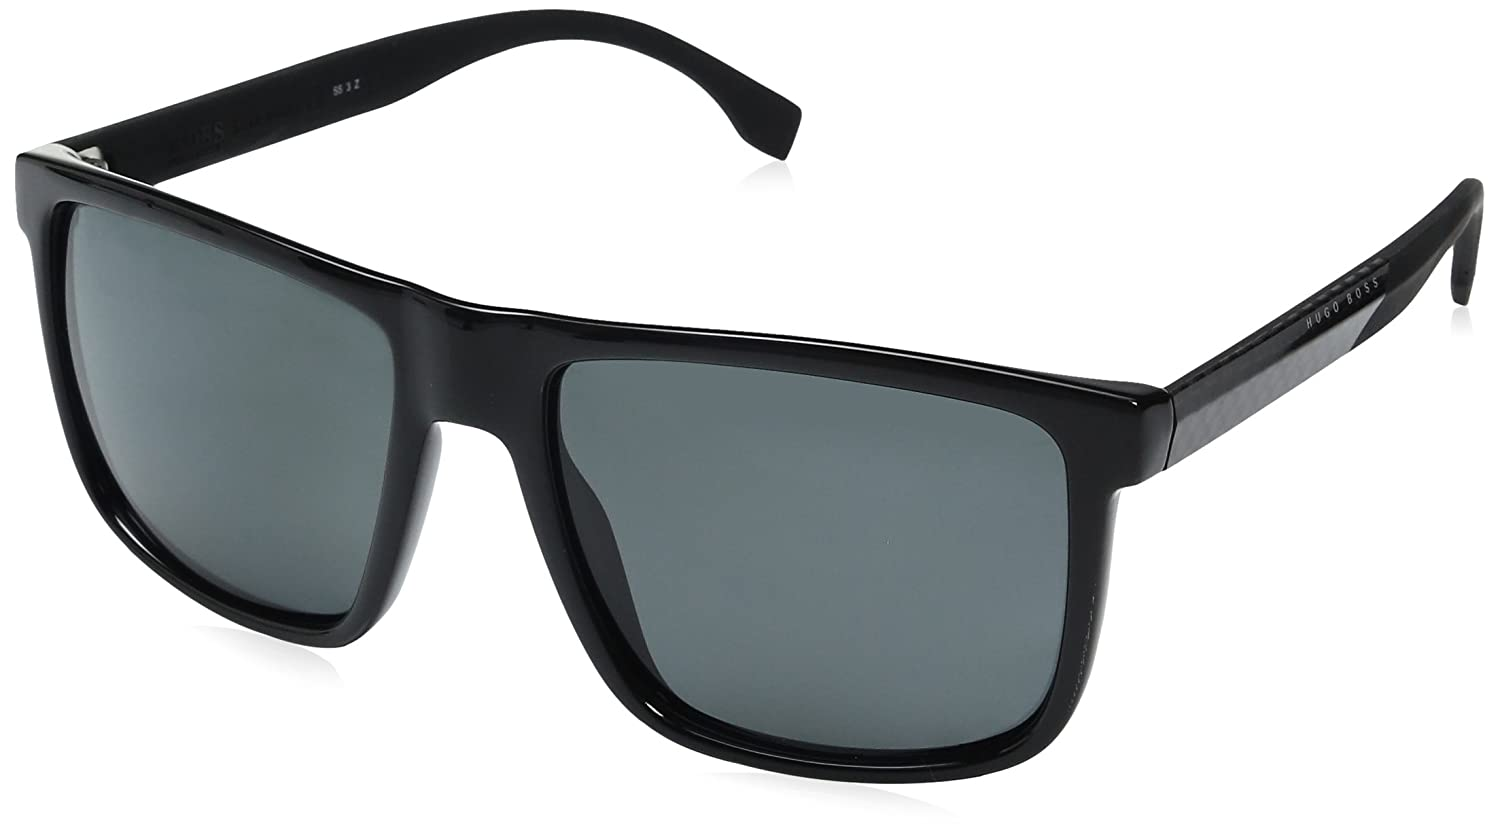 Amazon.com: BOSS by HUGO BOSS b0879s rectangular anteojos de ...